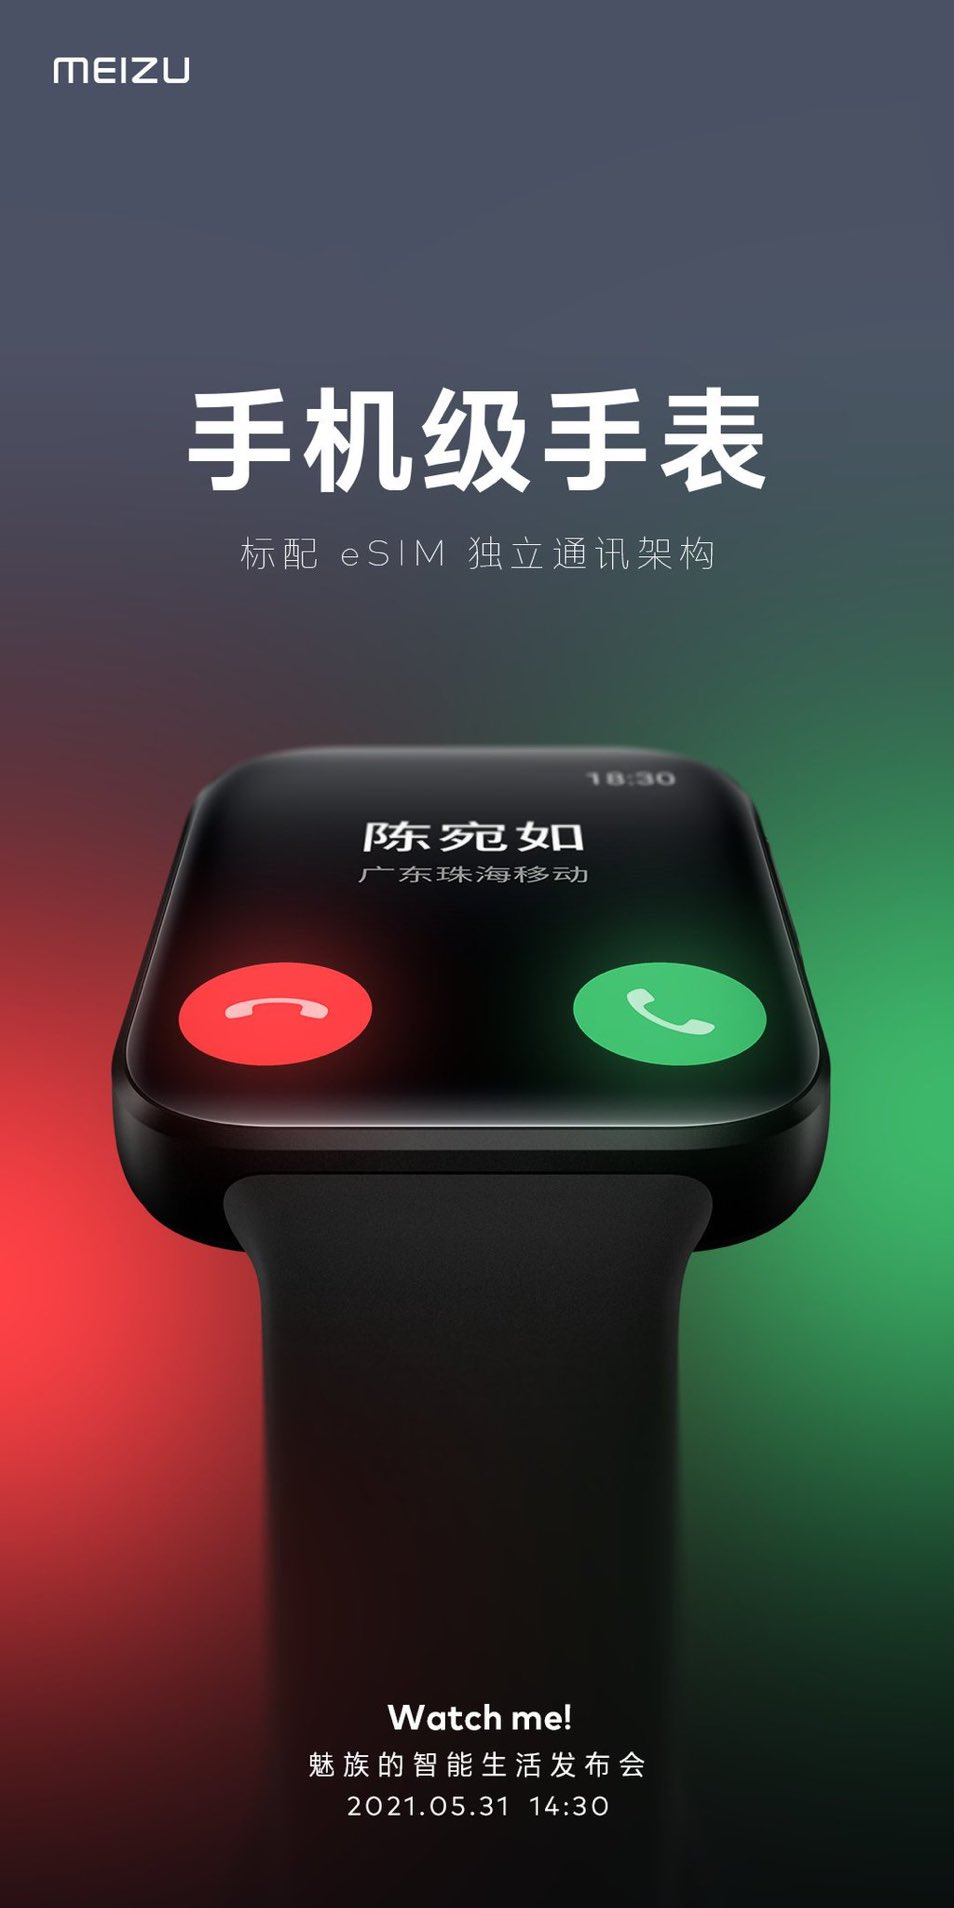 Meizu Opens Online Reservation For Its Upcoming Smartwatch Which Will Launch On 31st May